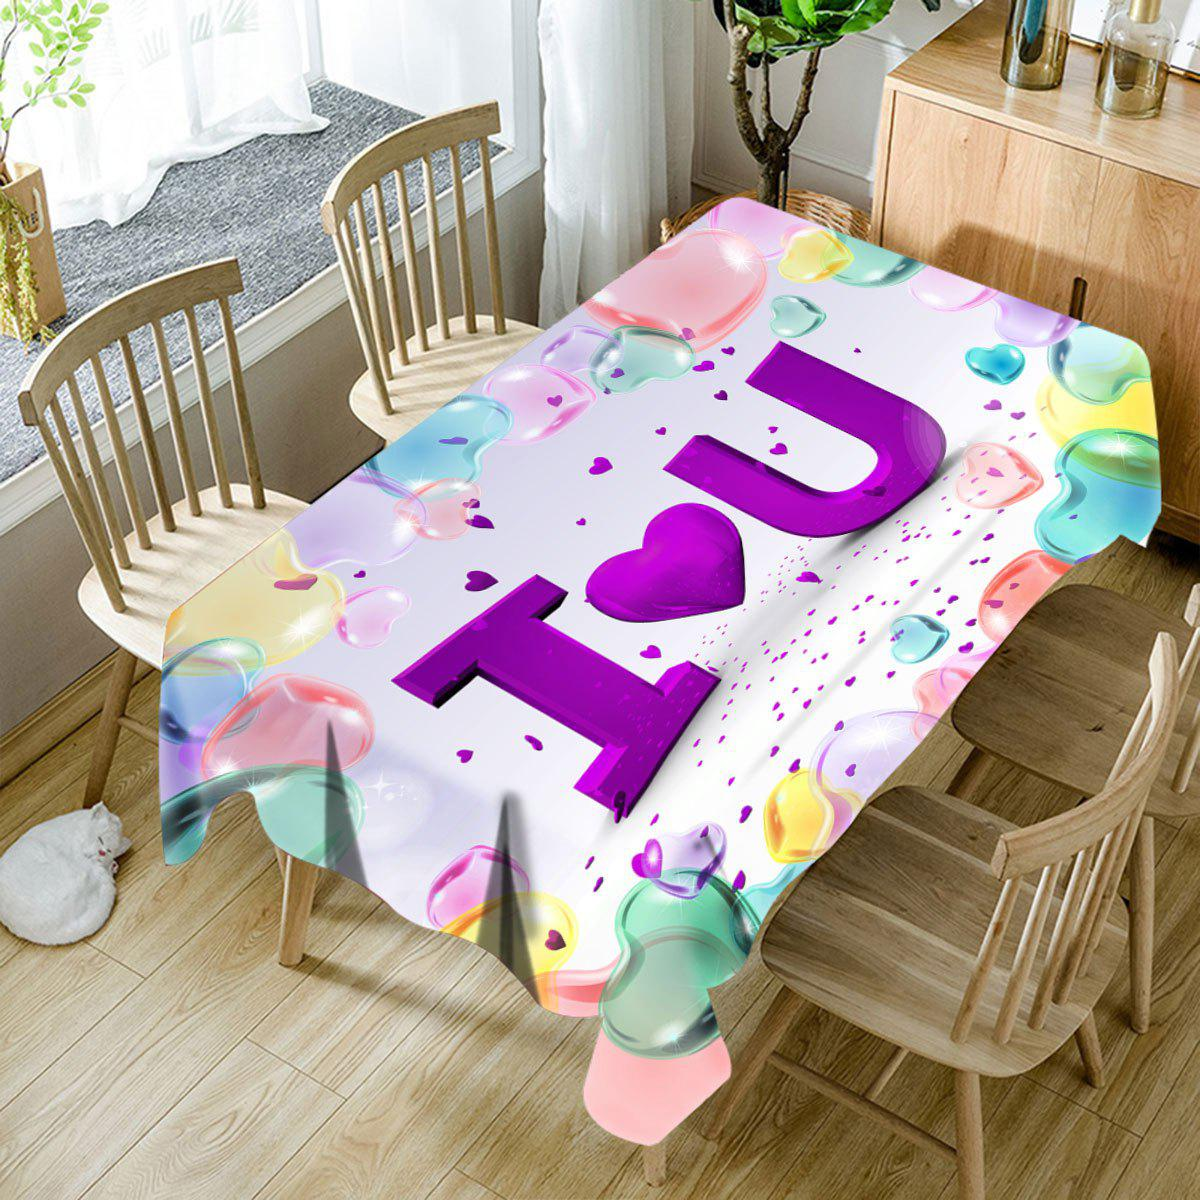 Latest Valentine's Day I Heart U Print Waterproof Table Cloth